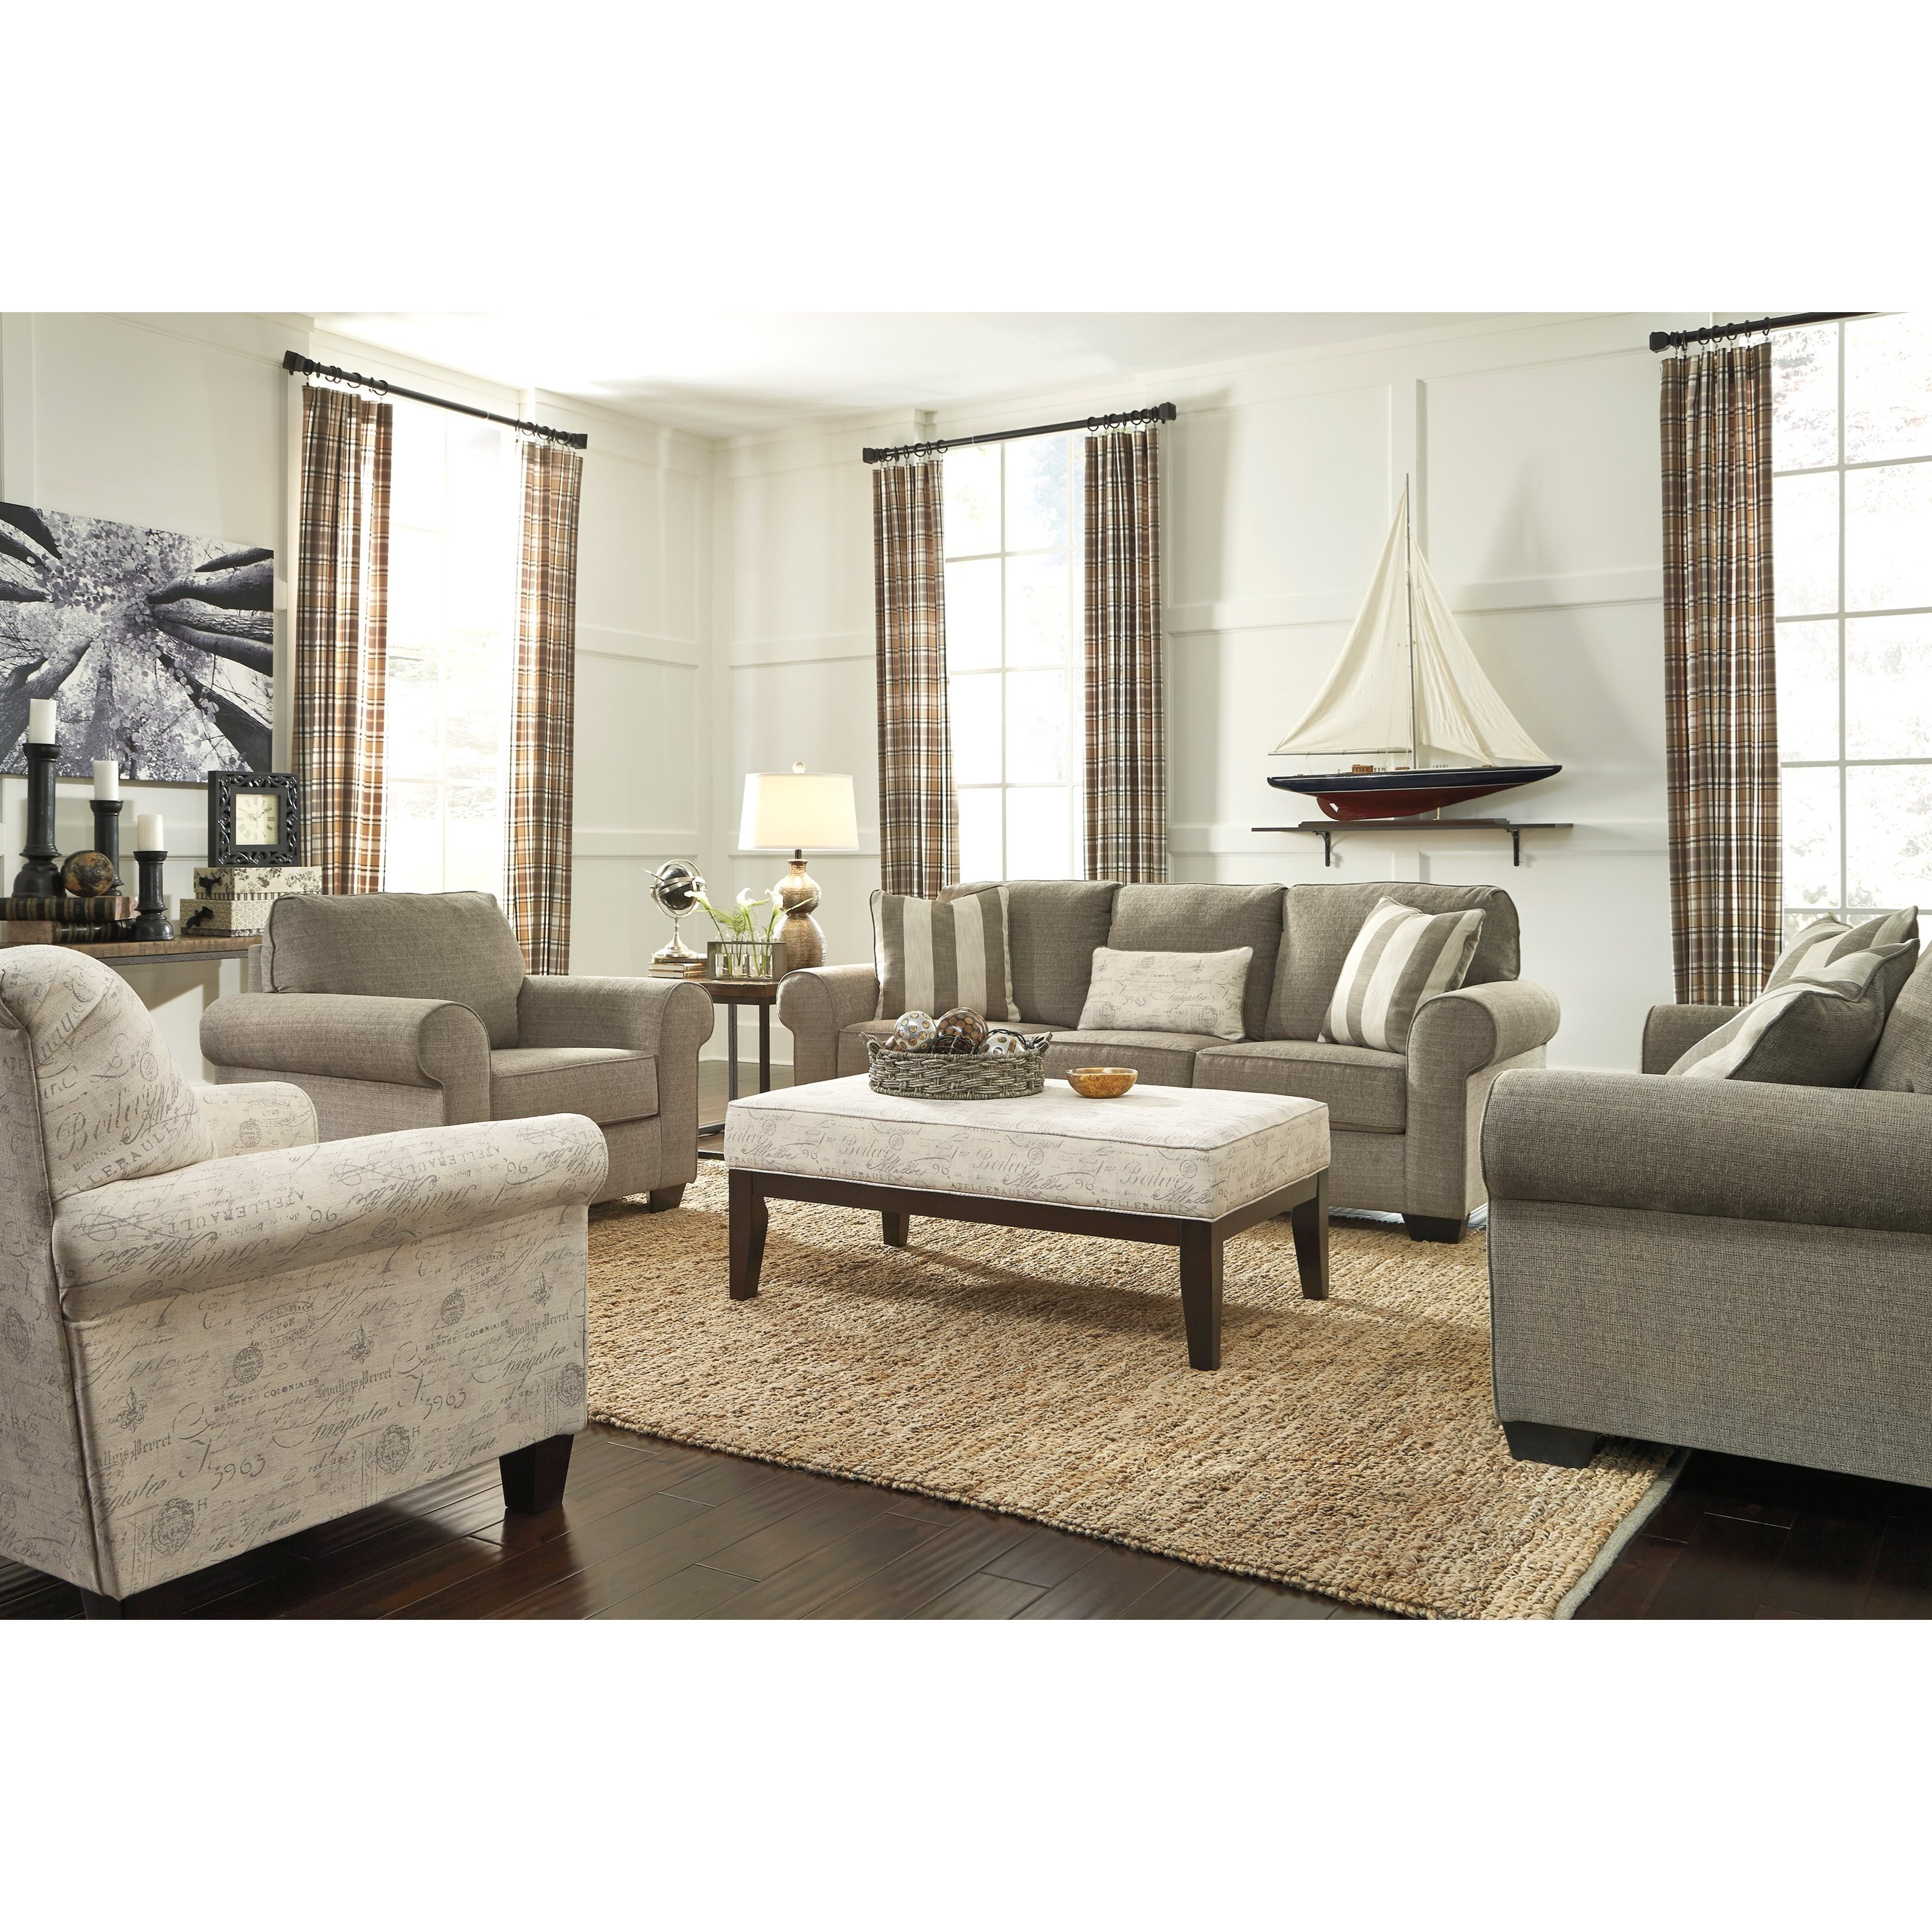 Signature Design by Ashley Baveria Stationary Living Room Group - Item Number: 47600 Living Room Group 4